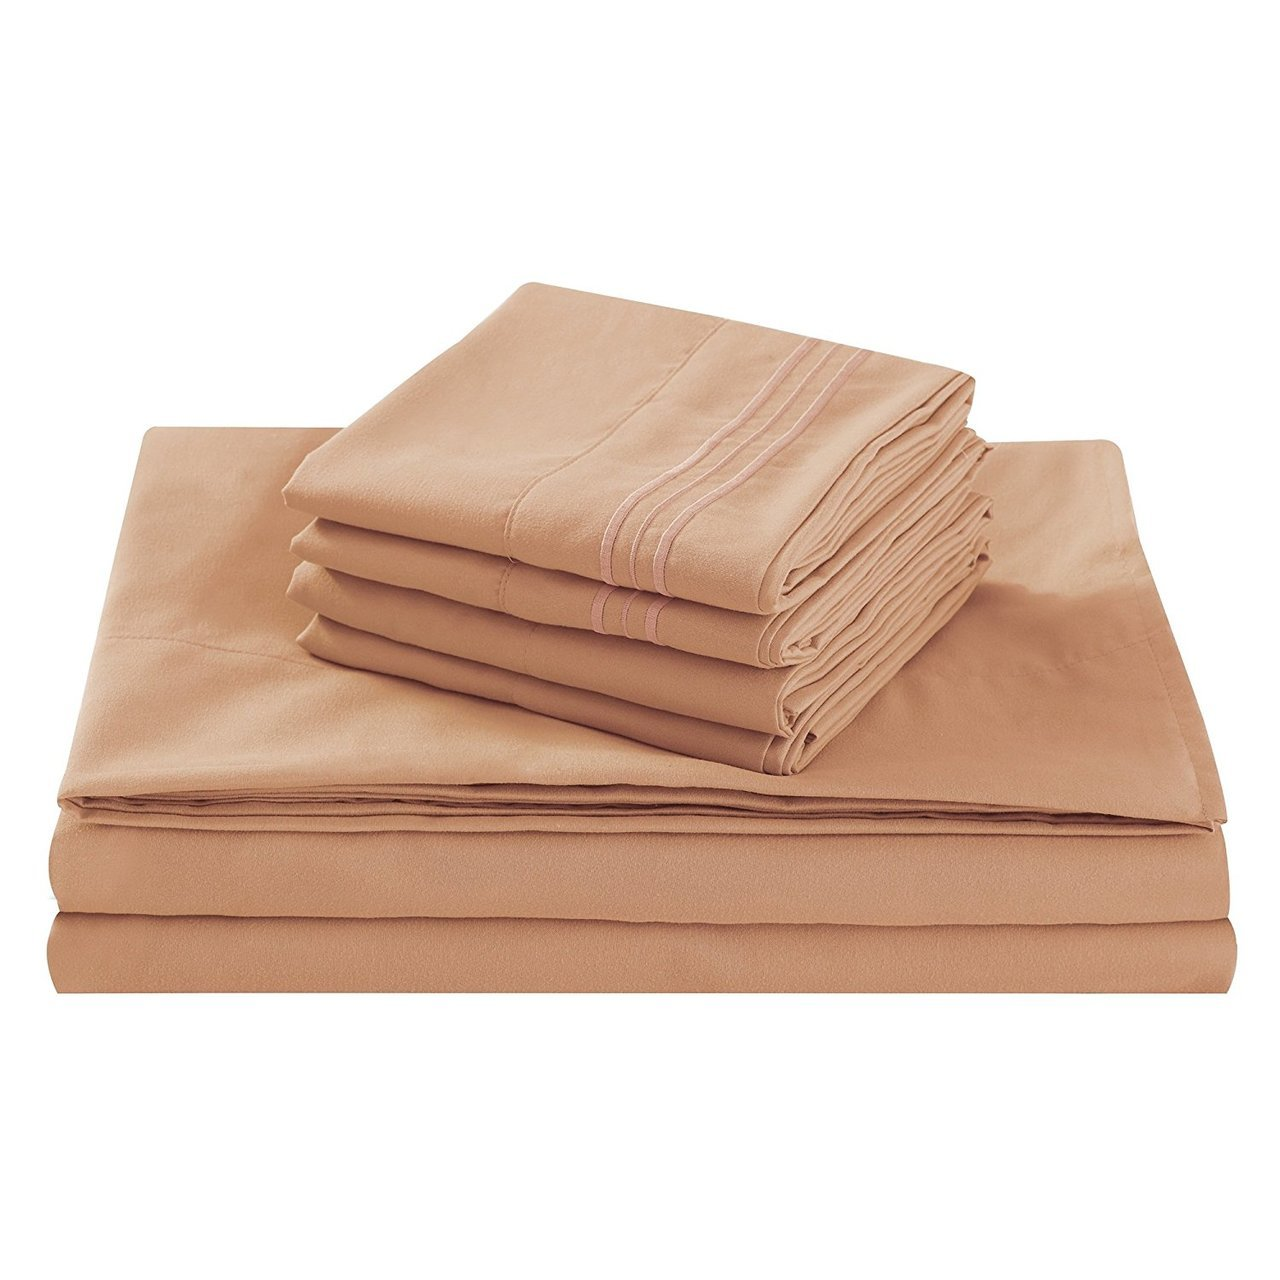 Fifth Avenue Home Camel California King Size Bed Sheet